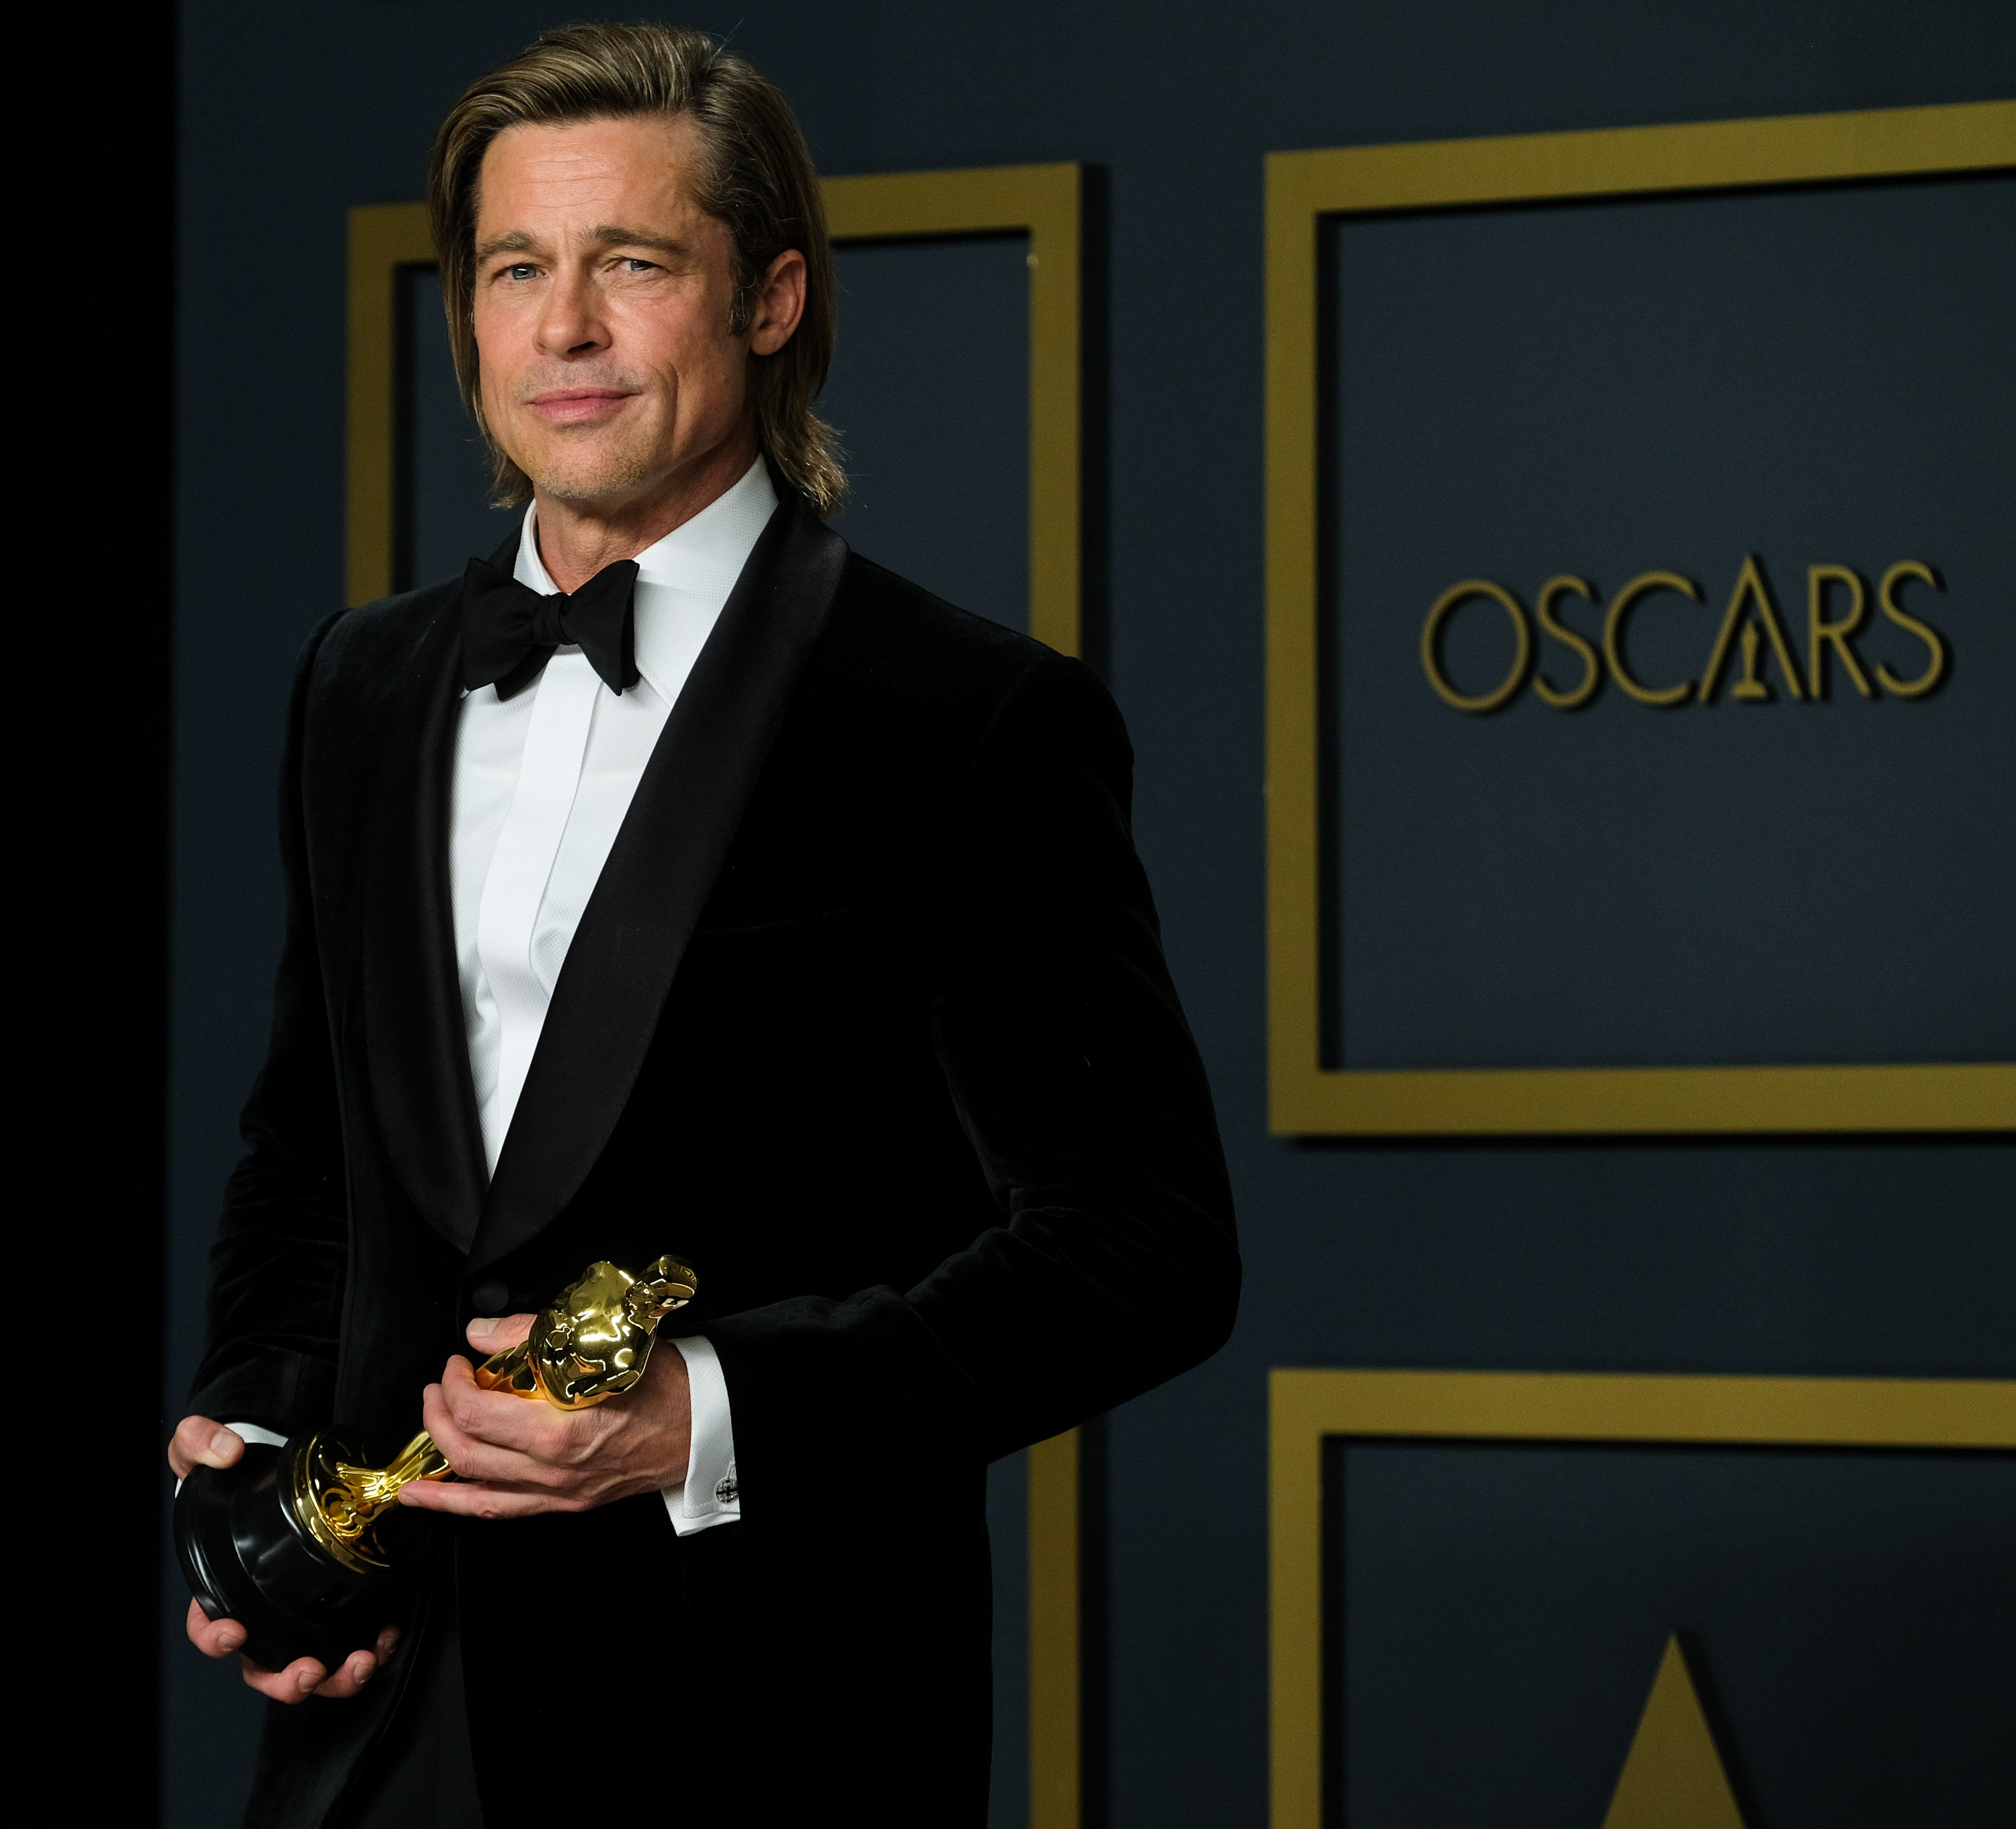 Brad Pitt poses with the Oscar for Actor In A Supporting Role in the film Once Upon A Time...In Hollywood during the the 92nd Academy Awards, 2020 on Monday 10 February 2020